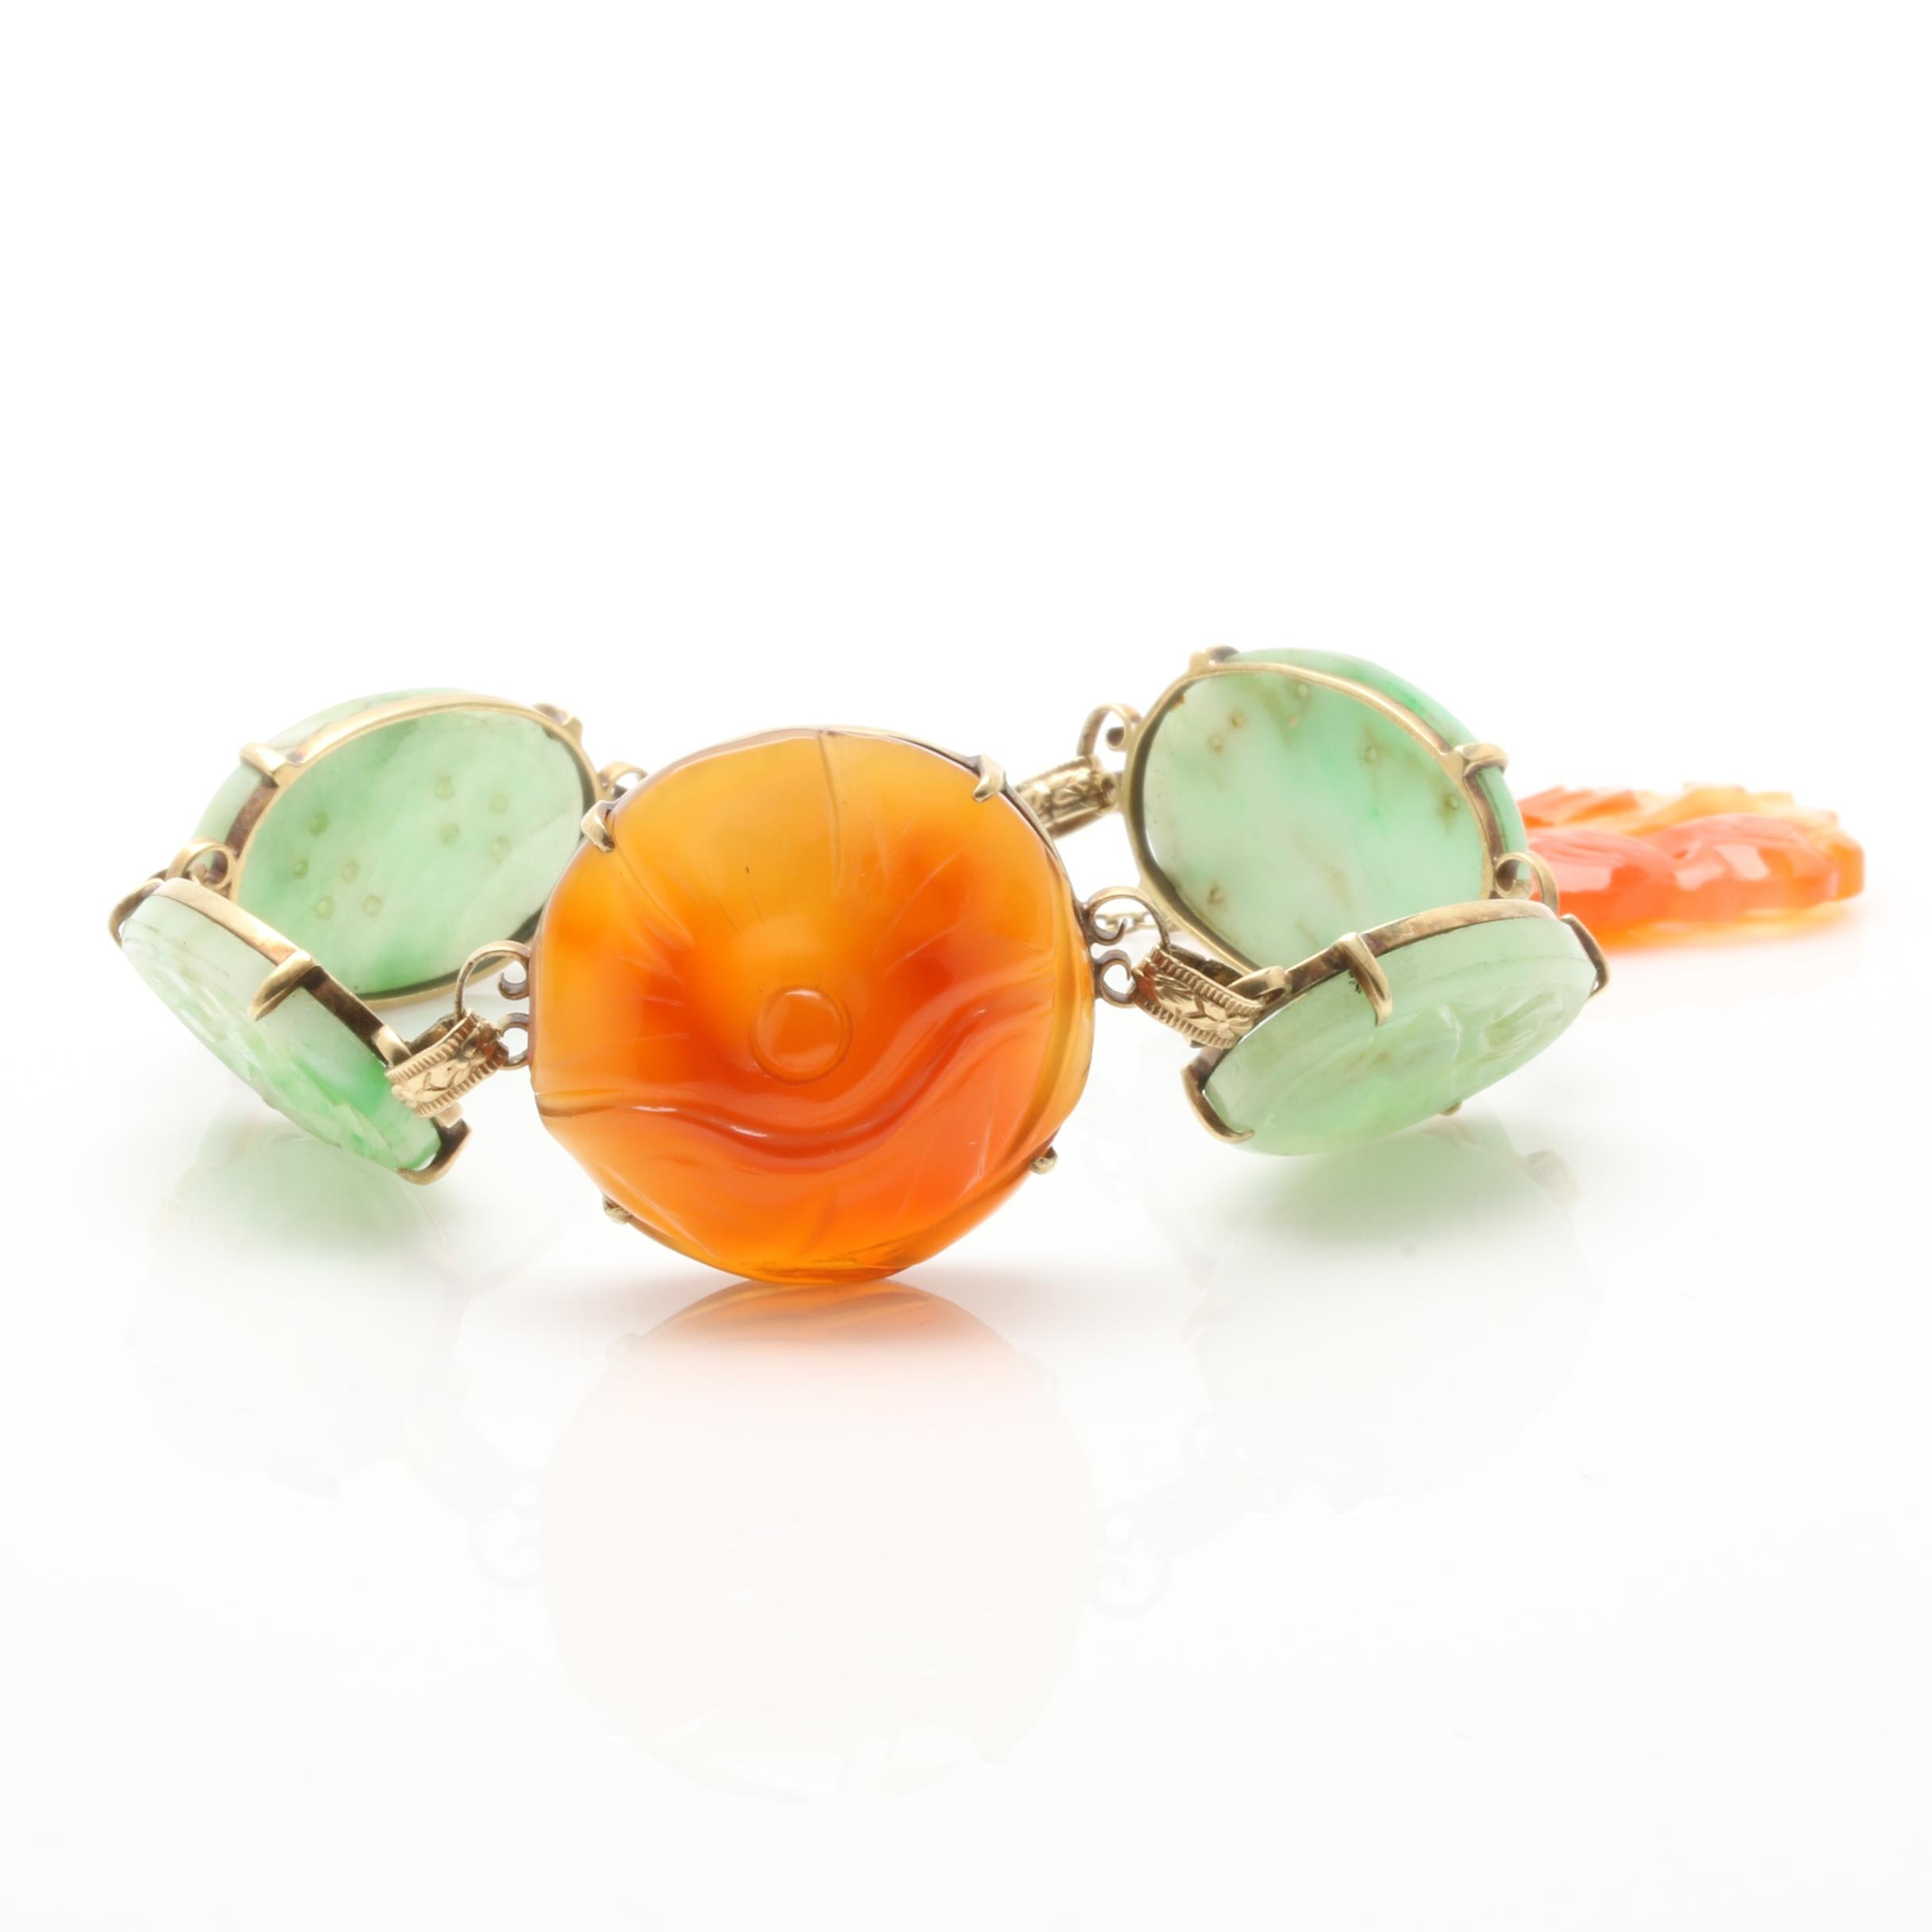 14K Yellow Gold Carved Jadeite and Agate Drop Bracelet